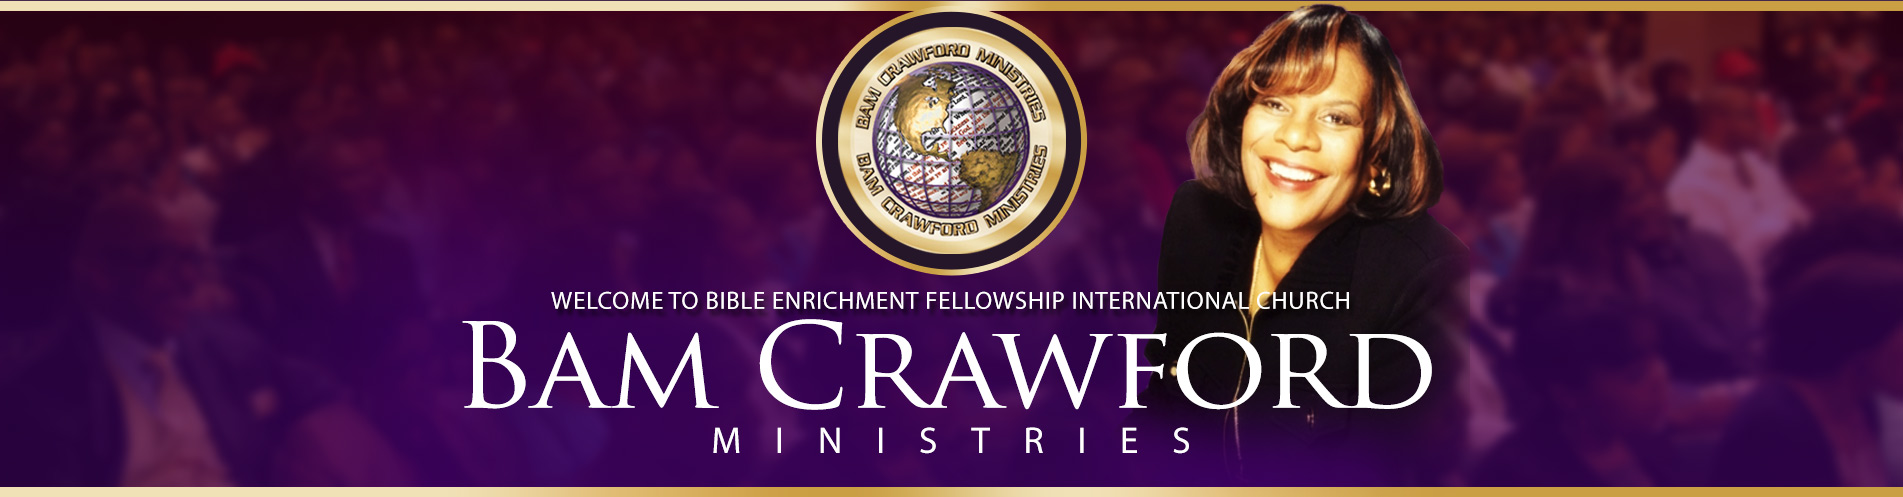 bam crawford ministries